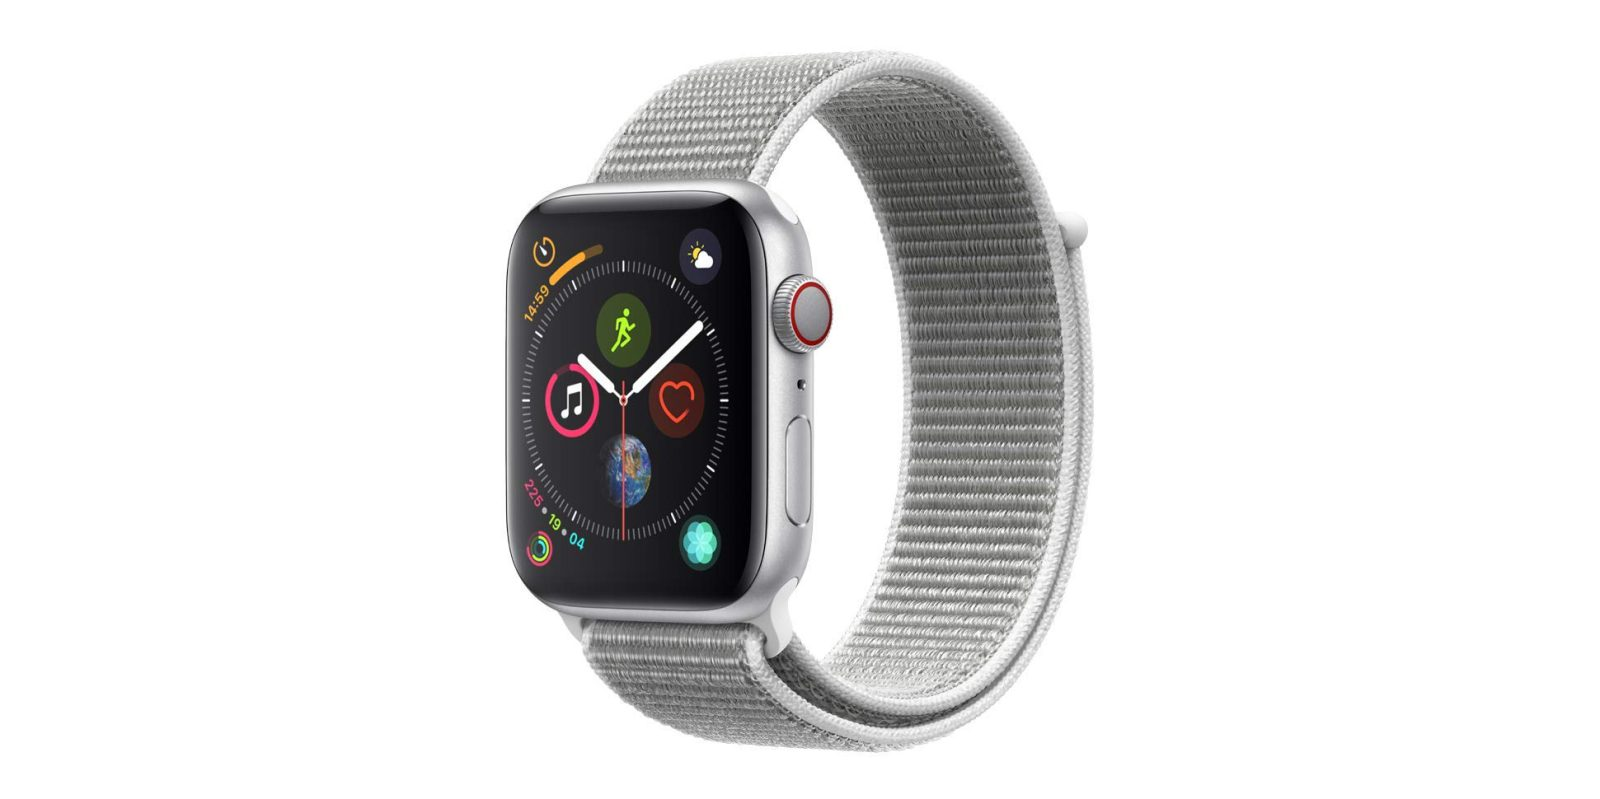 Apple Watch Series 4 LTE with Sport Loop Band sees $80 discount, now $449